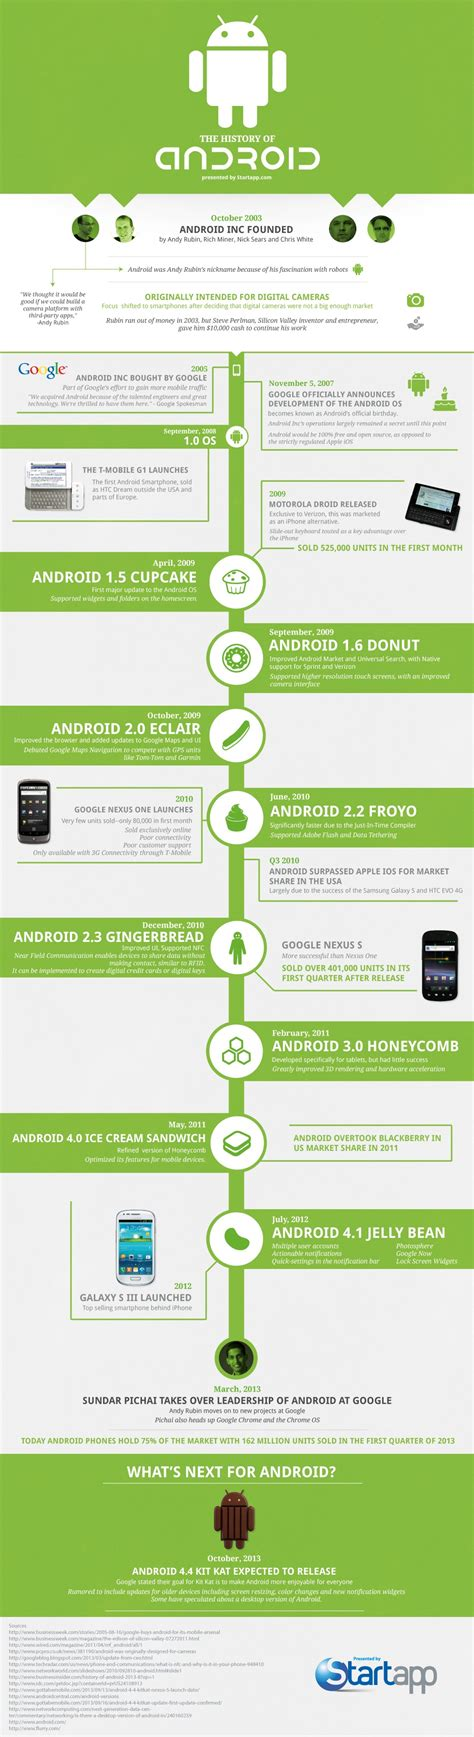 android history the history of android infographic